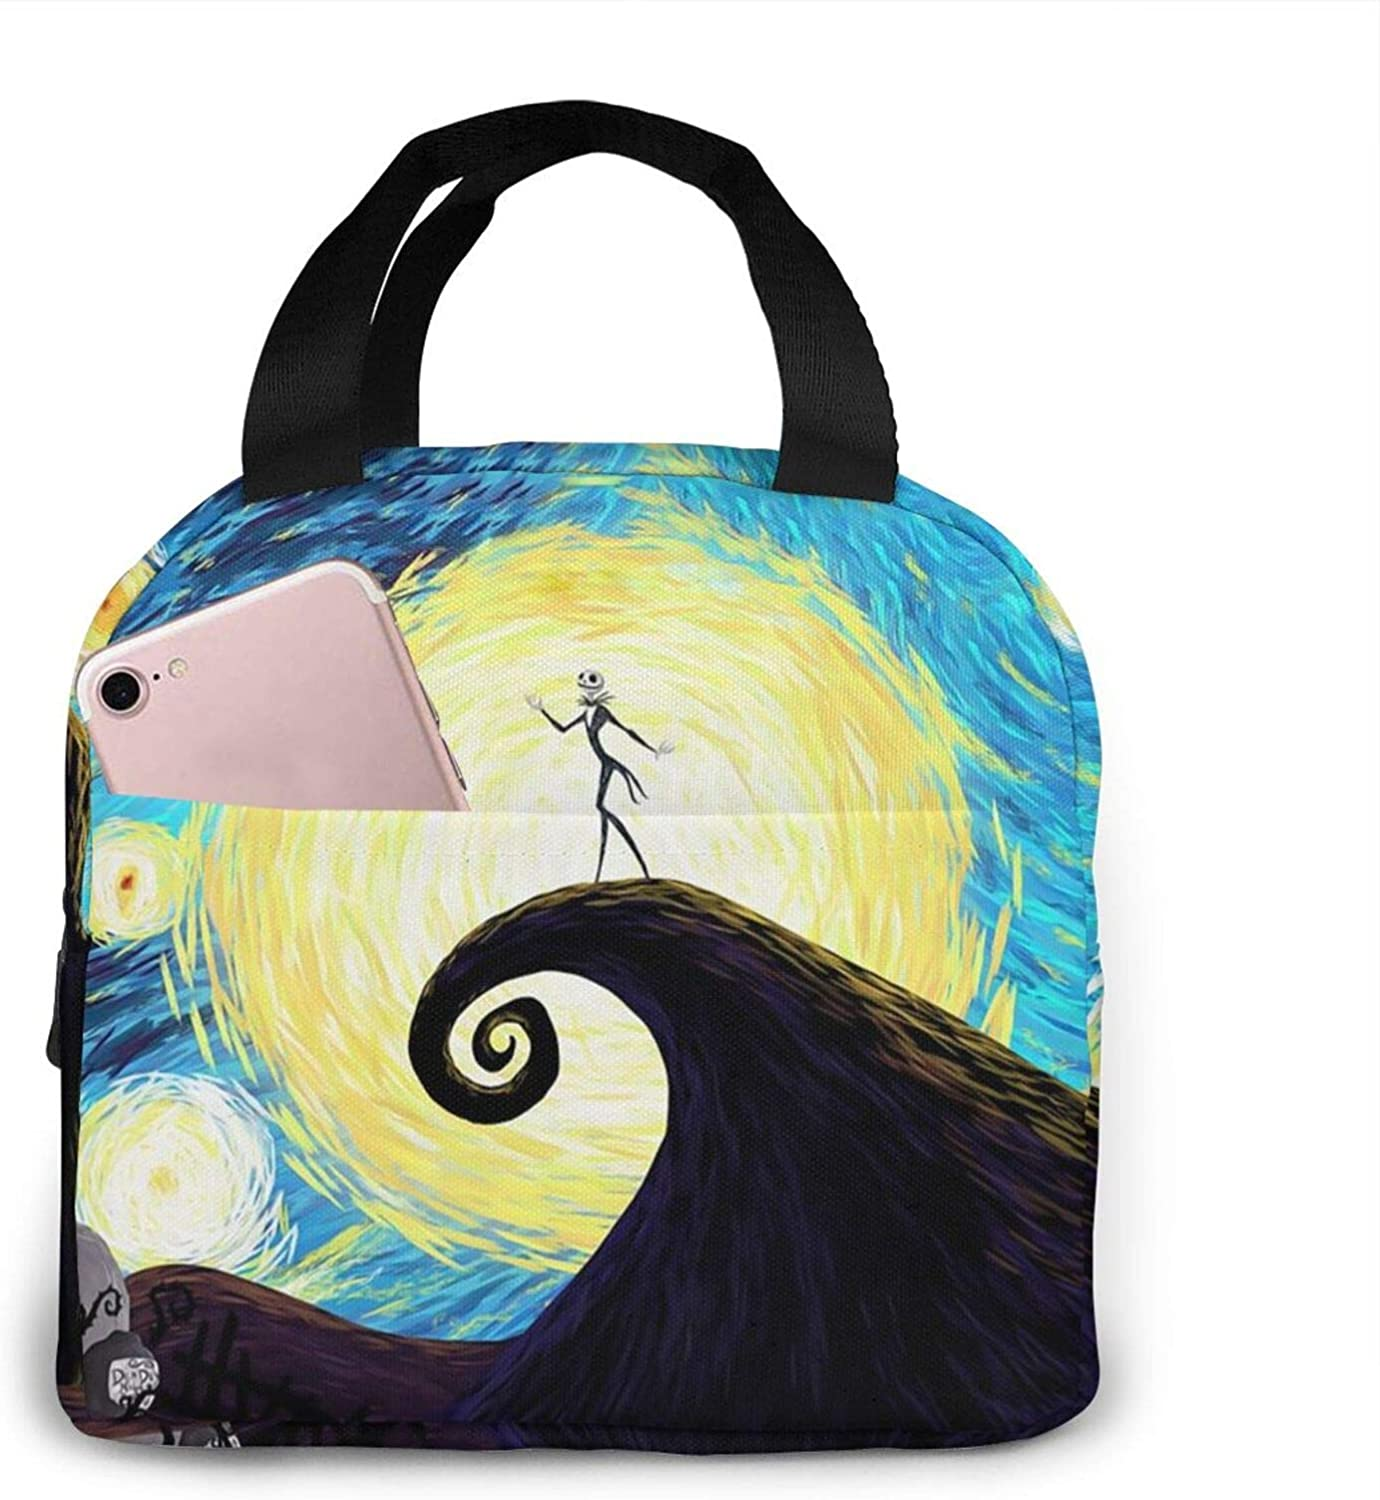 Sadie Mae Nig-htmare Befo-e Christm-as Insulated Durable Lunch Bag for Men Women,Tote Portable Handbag Lunchbox Food Tote Cooler Warm Pouch for School Work Office Picnic Travel Beach